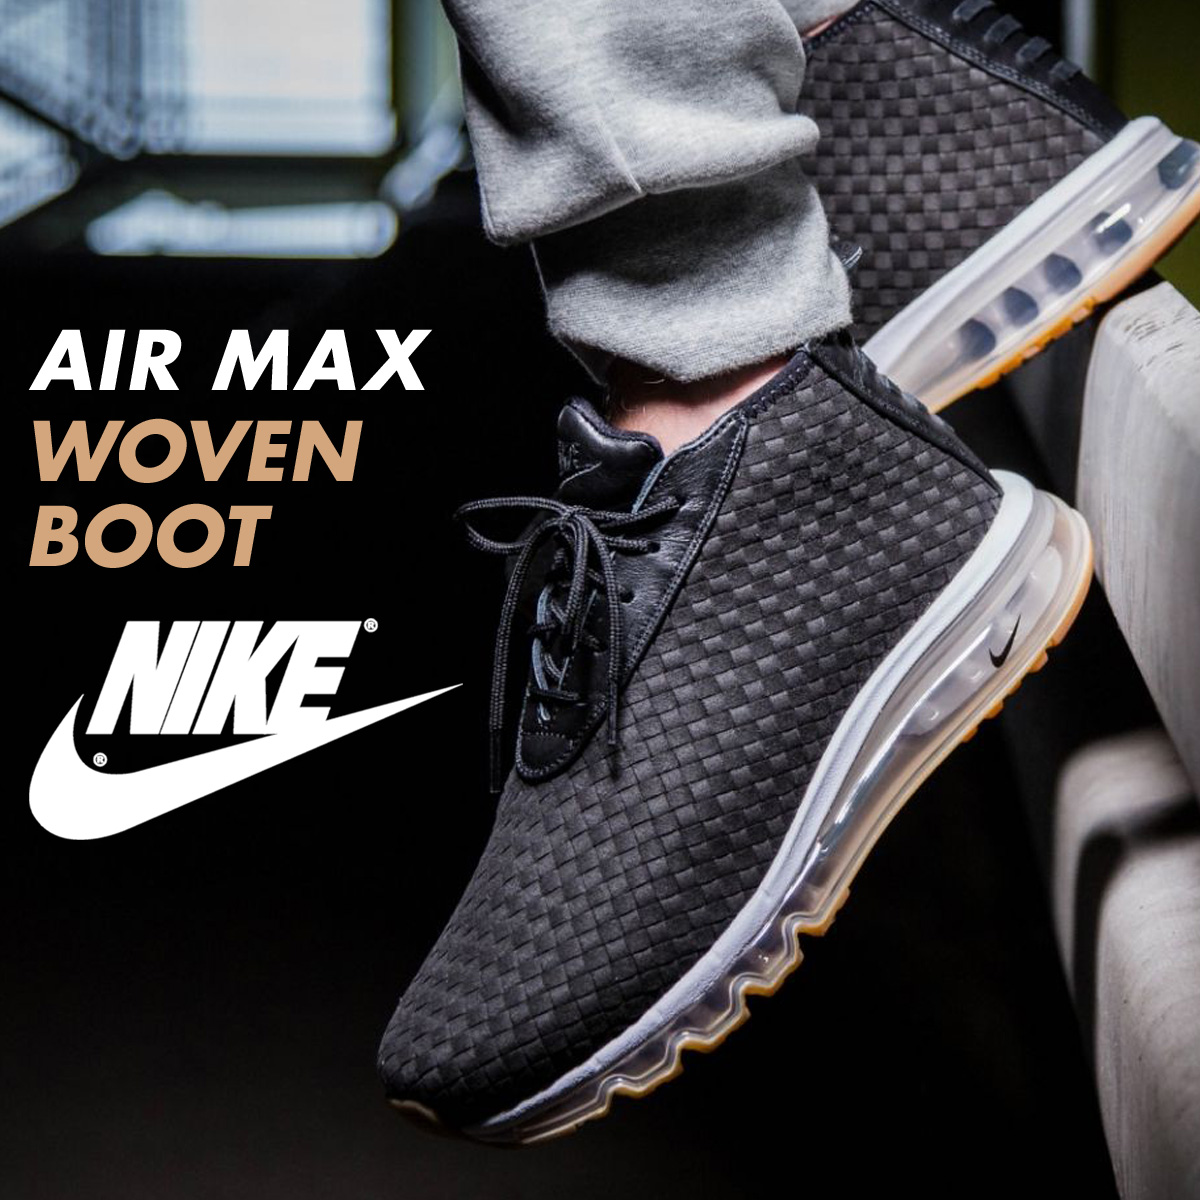 Nike Max Sugar Online Air Woven Sneakers Shop Boot Iq6aZwnET6